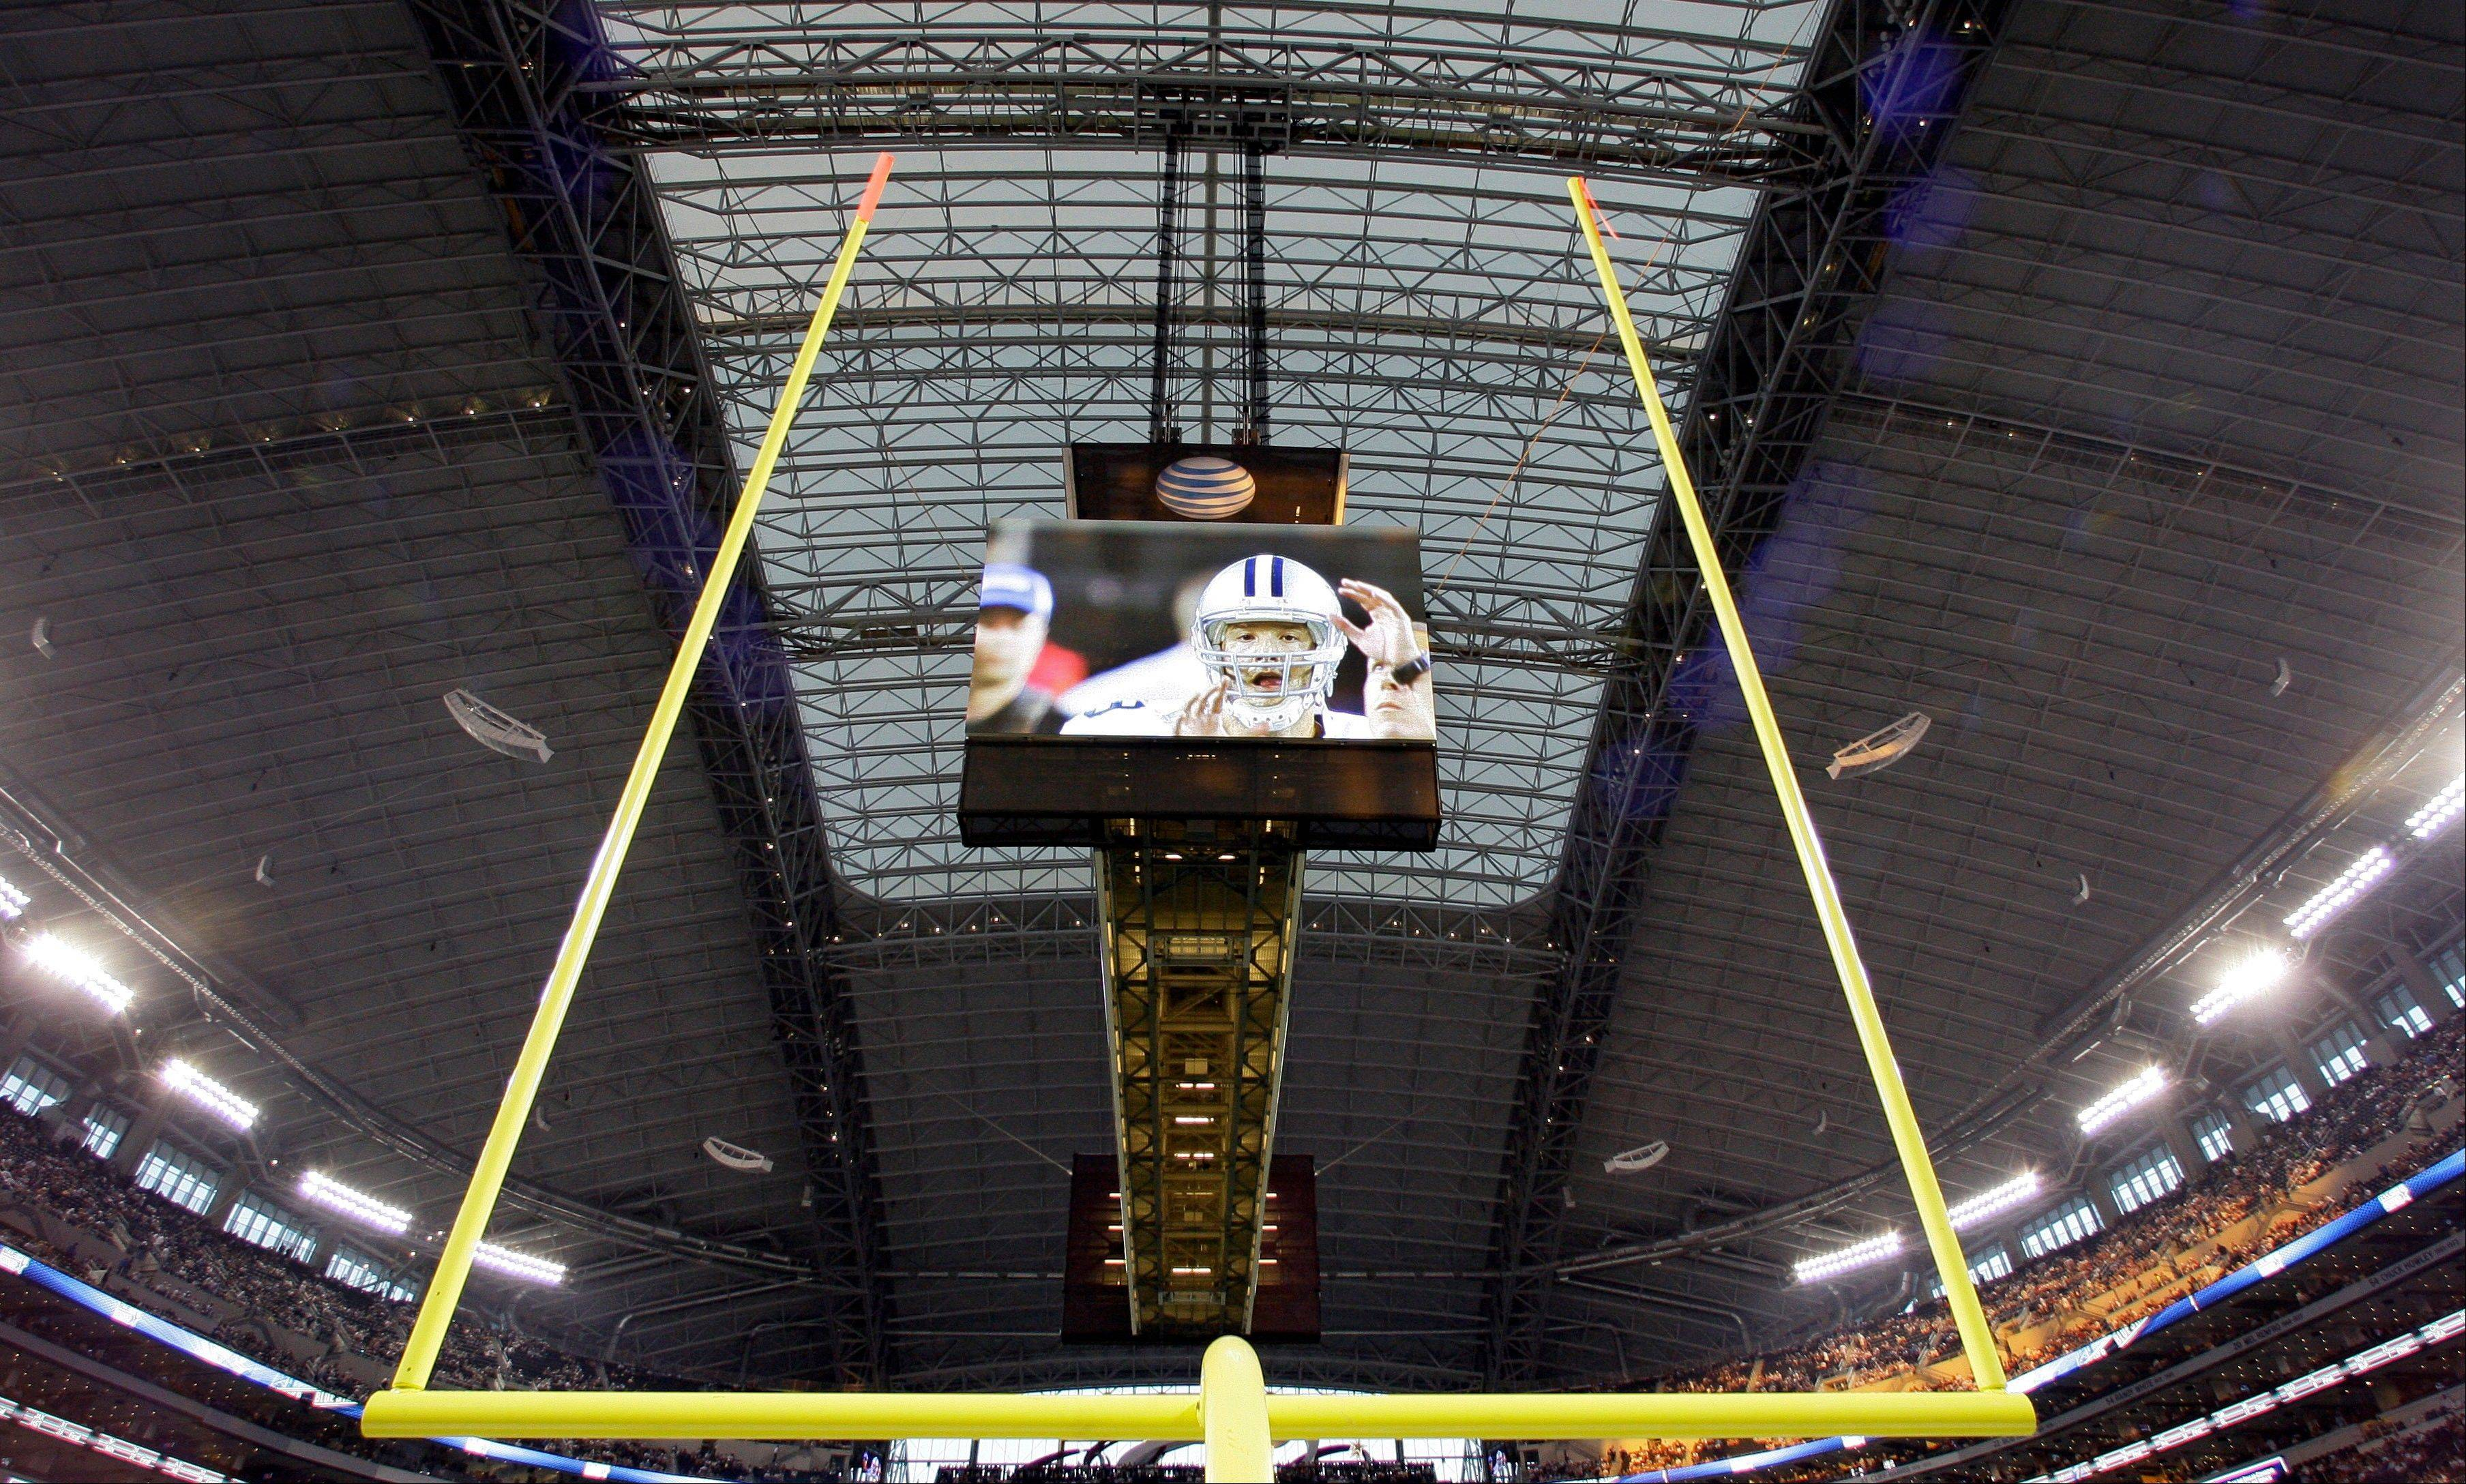 The Dallas Cowboys boast a high-tech stadium and video display, but there are more advances to come in the NFL. The first-down line that has become a staple of all NFL broadcasts could become a fixture for fans at the stadium, and chain crews might disappear if measurements can accurately be determined through high-tech gadgets.